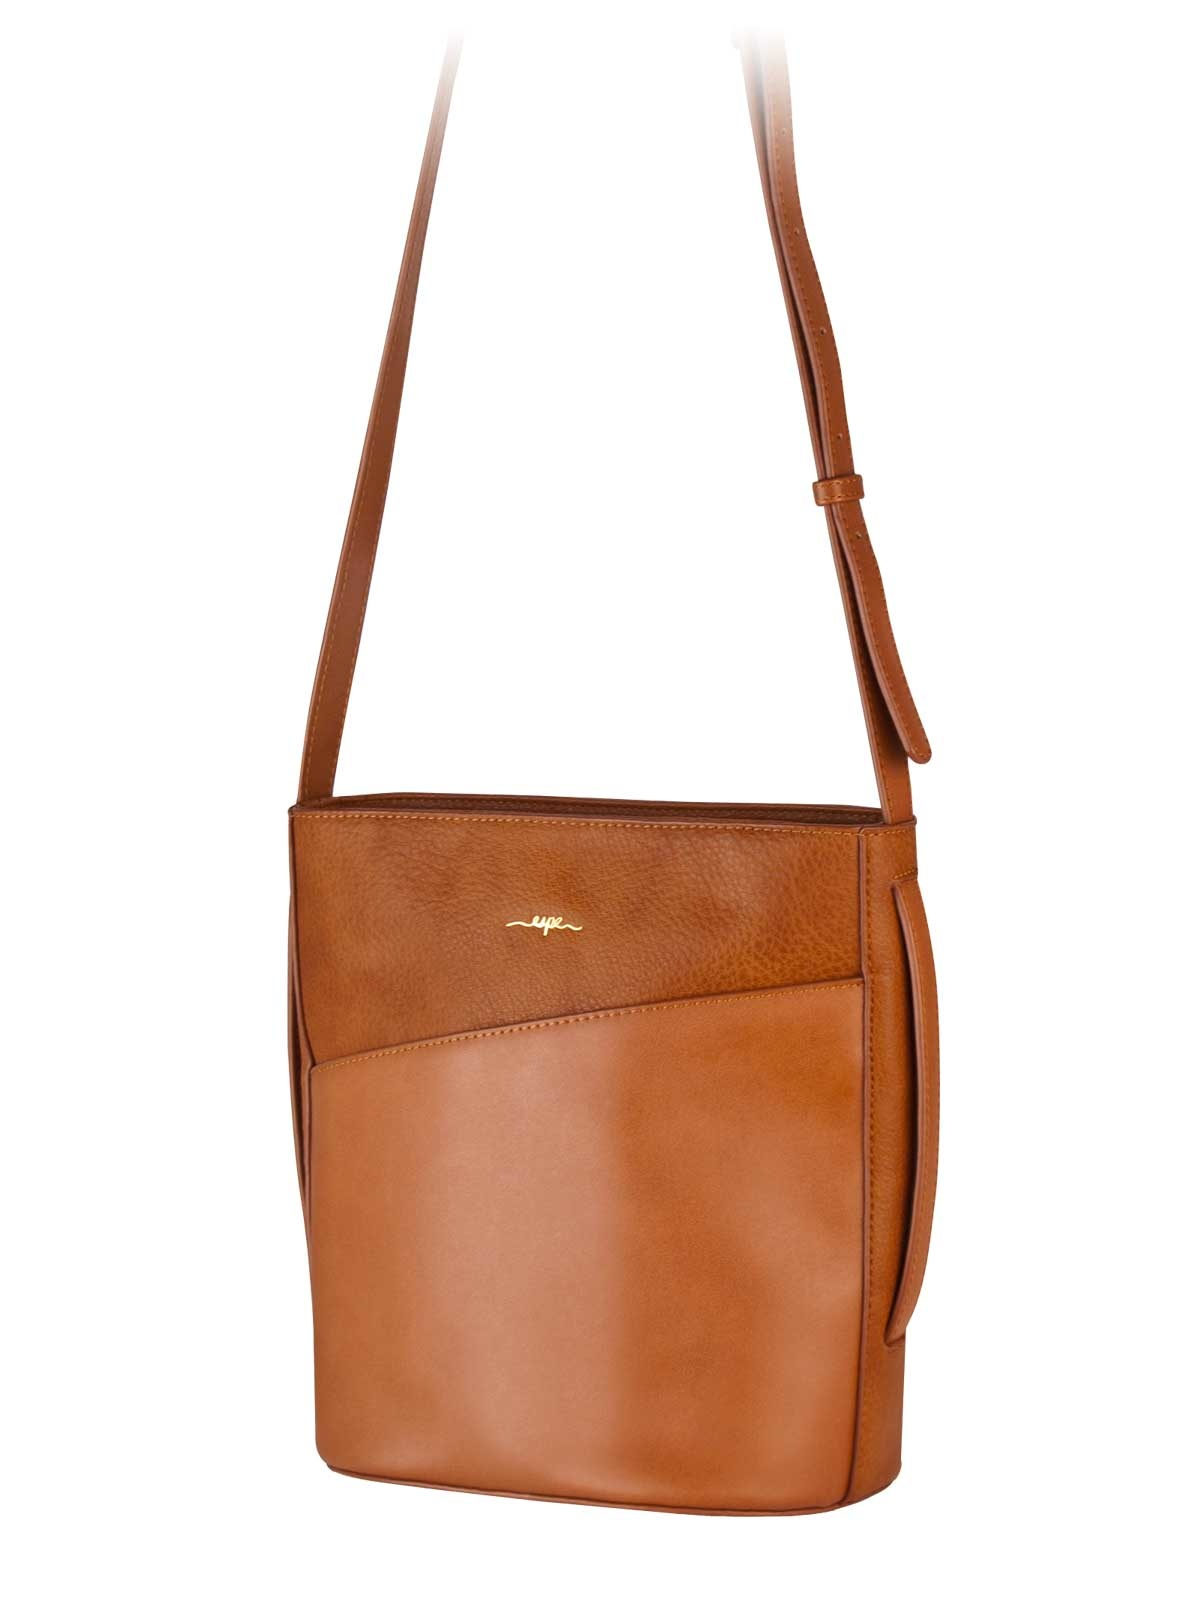 Espe Espe Emma Crossbody Bucket Bag